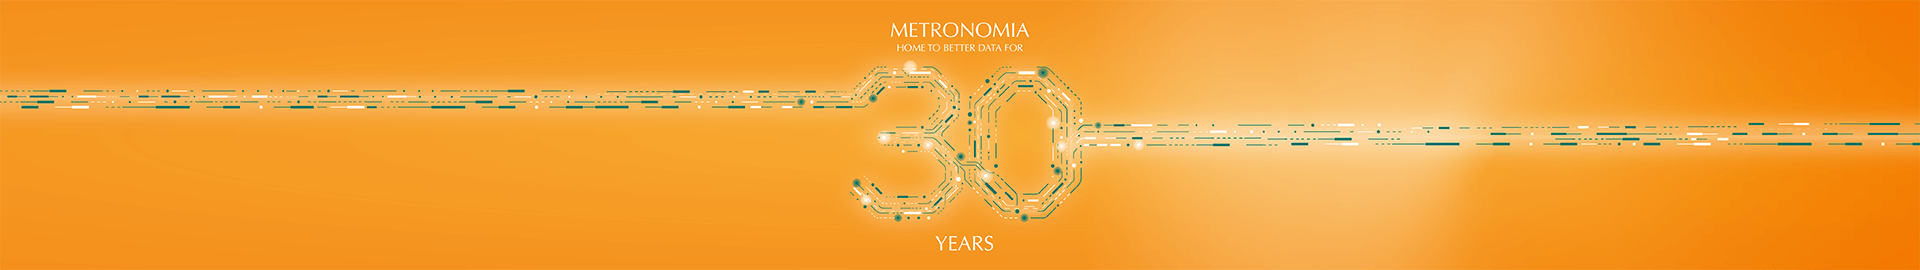 Metronomia - Home to better data for 30 years